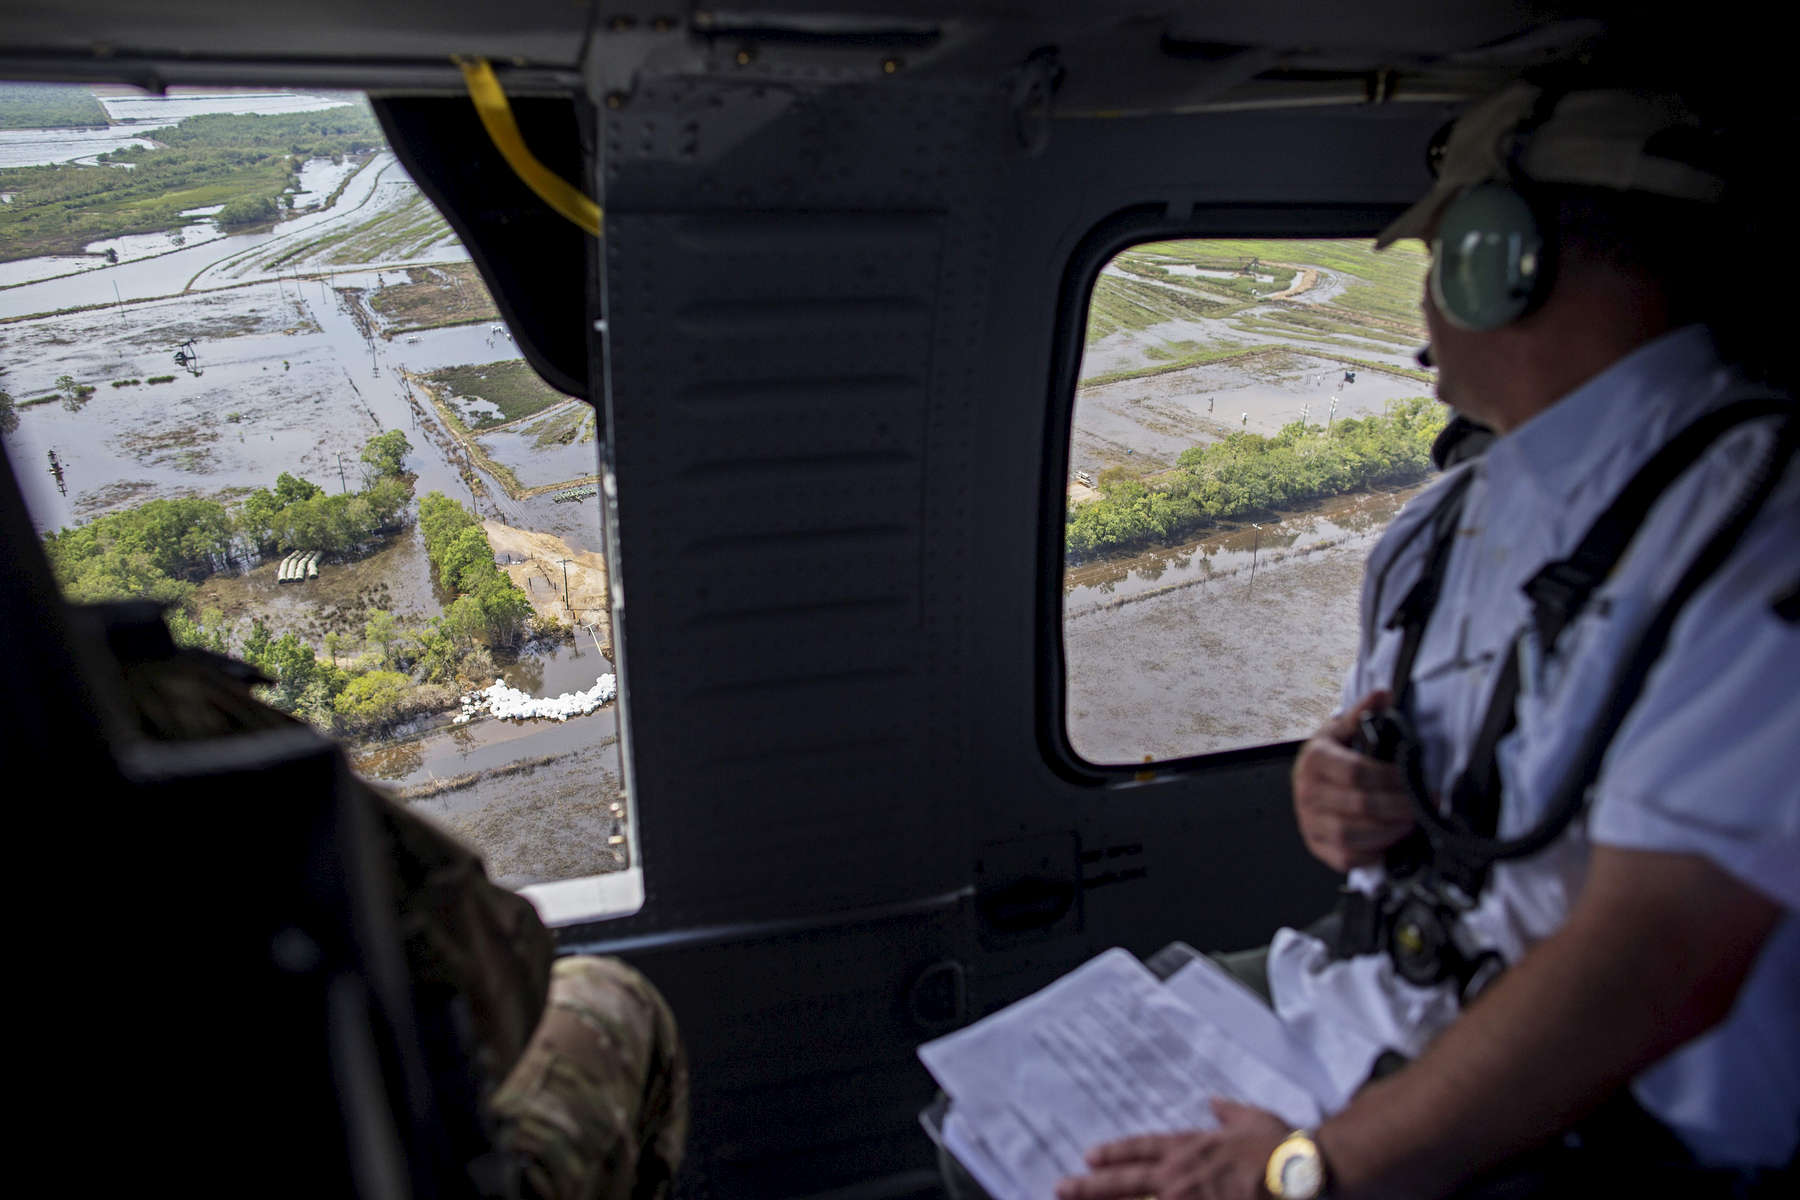 Louisiana Gov. John Bel Edwards, right, reviews a shored up breach in a levee dam that the Louisiana National Guard filled using 362, 4000-lb. sand bags that were put in place with a helicopter near Gueydan, La. USA, Thursday, Aug. 25, 2016. {quote}Though we are bringing to bear all the FEMA relief we can and what's allowed by statute, it's not going to be enough to make people whole, and that's unfortunate,{quote} Louisiana Gov. John Bel Edwards said. (AP Photo/Max Becherer)